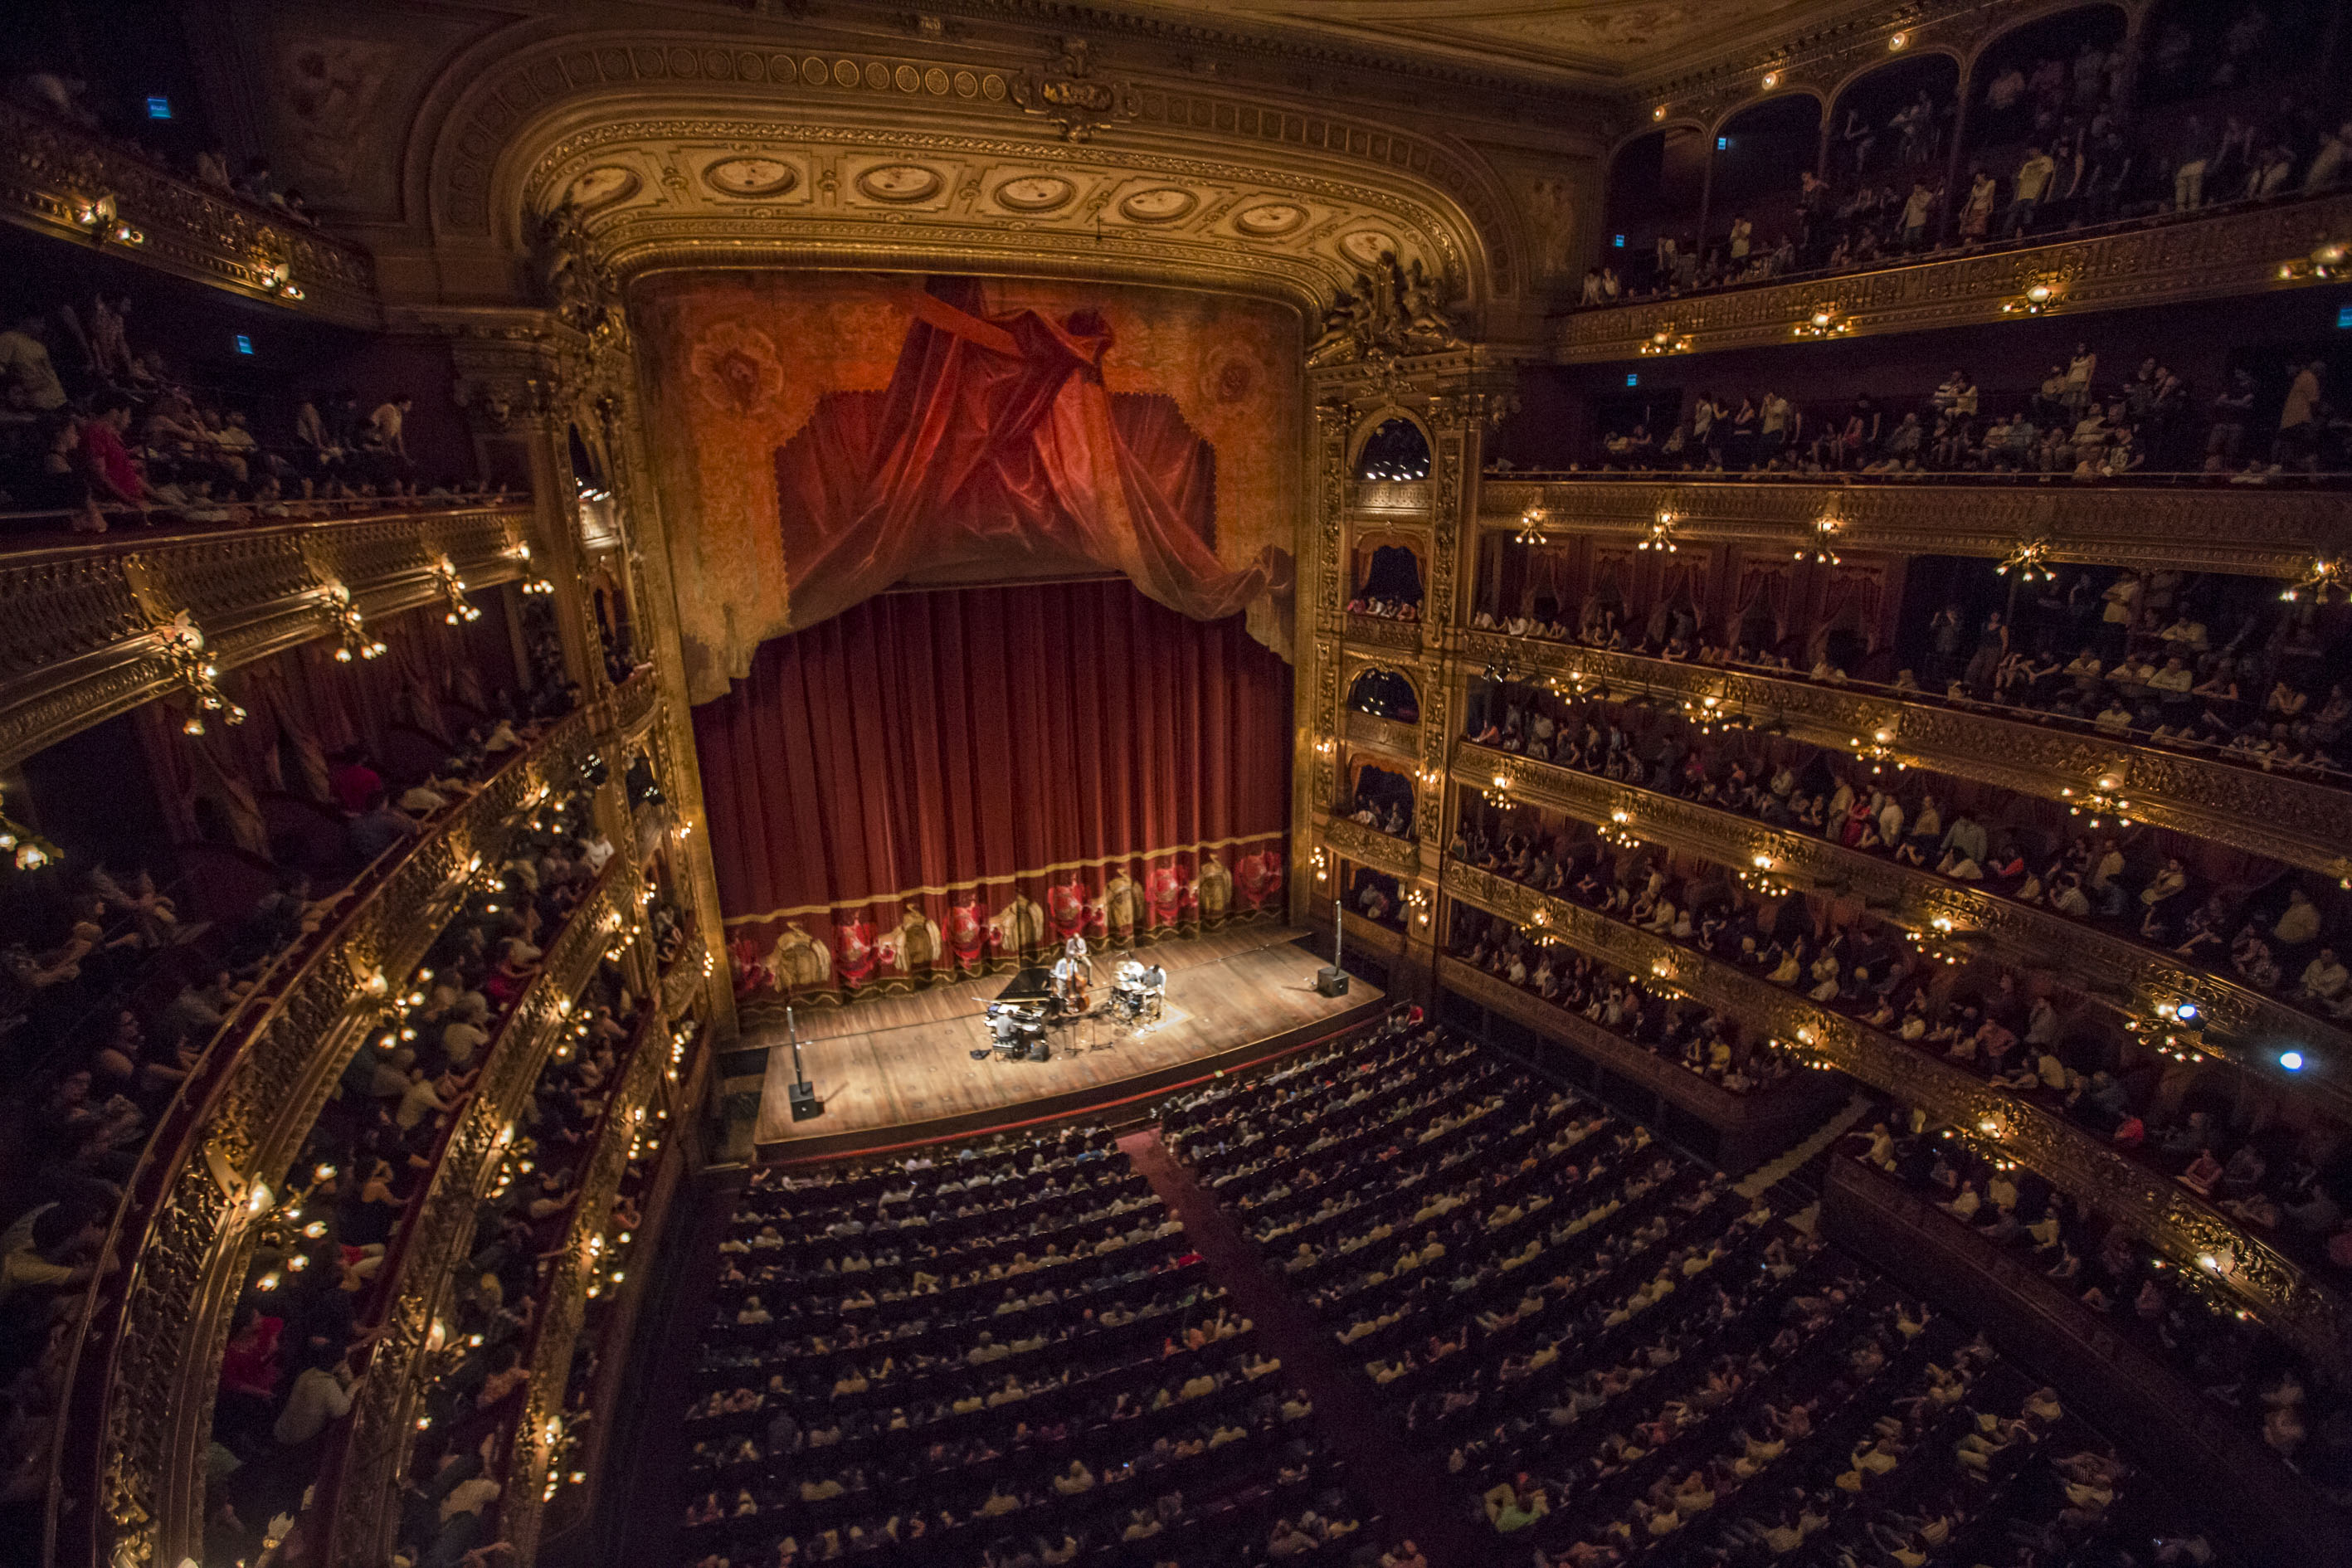 Teatro Colón, The Pearl Of Buenos Aires